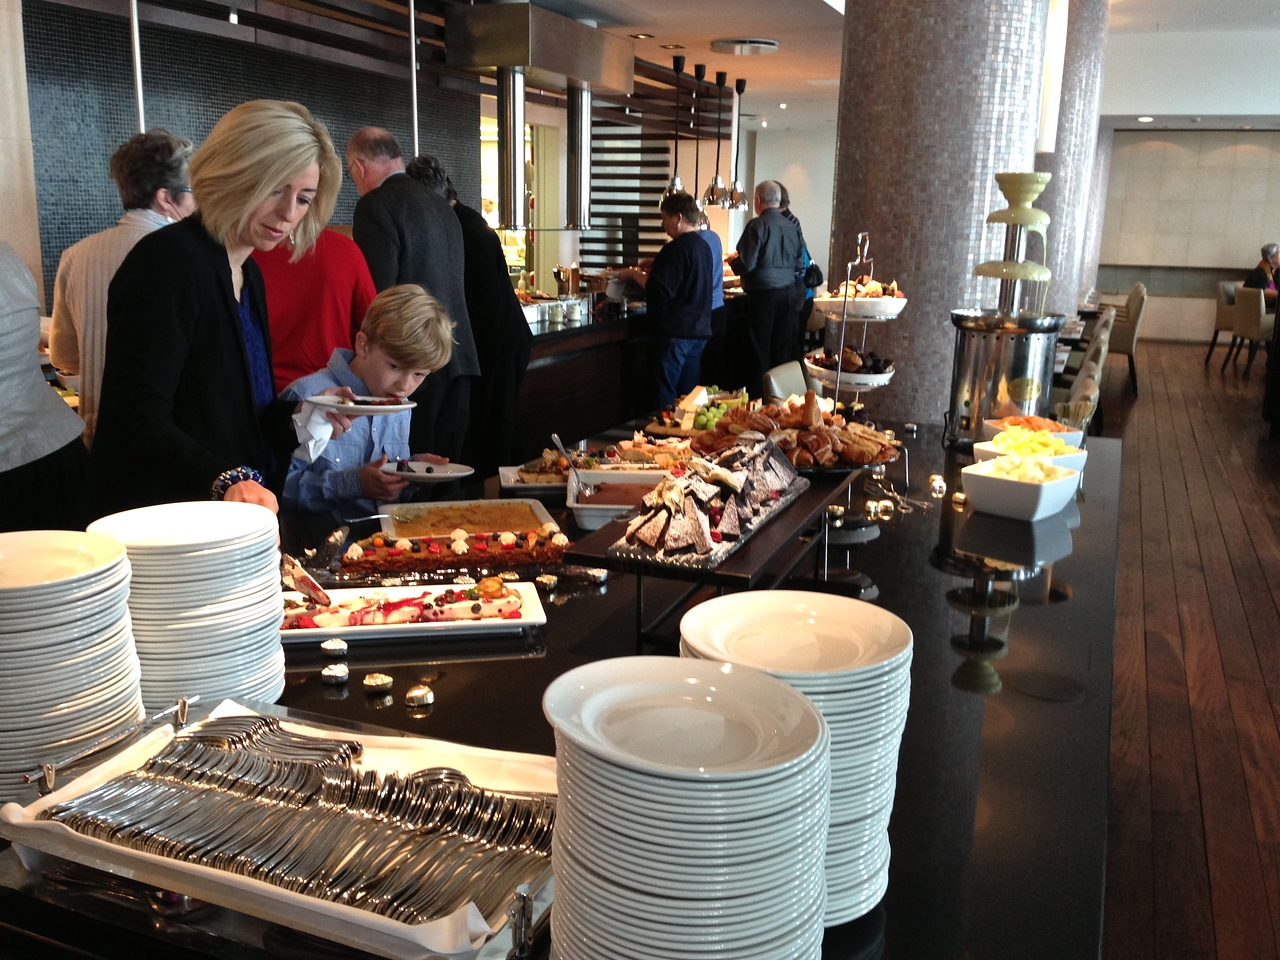 The Hilton is viewed as one of the best places in Reykjavik for Sunday brunch.